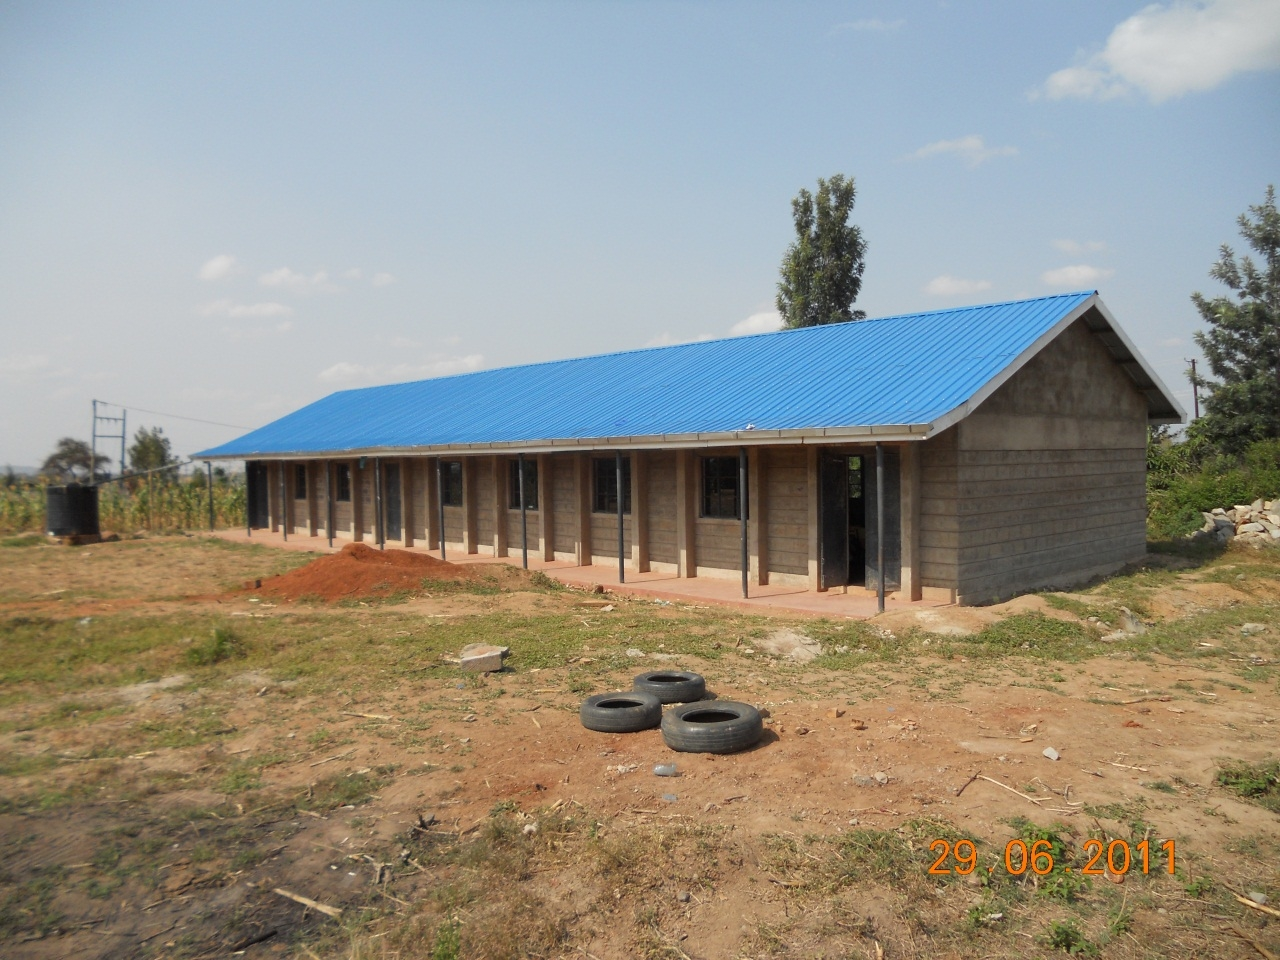 The New School Building